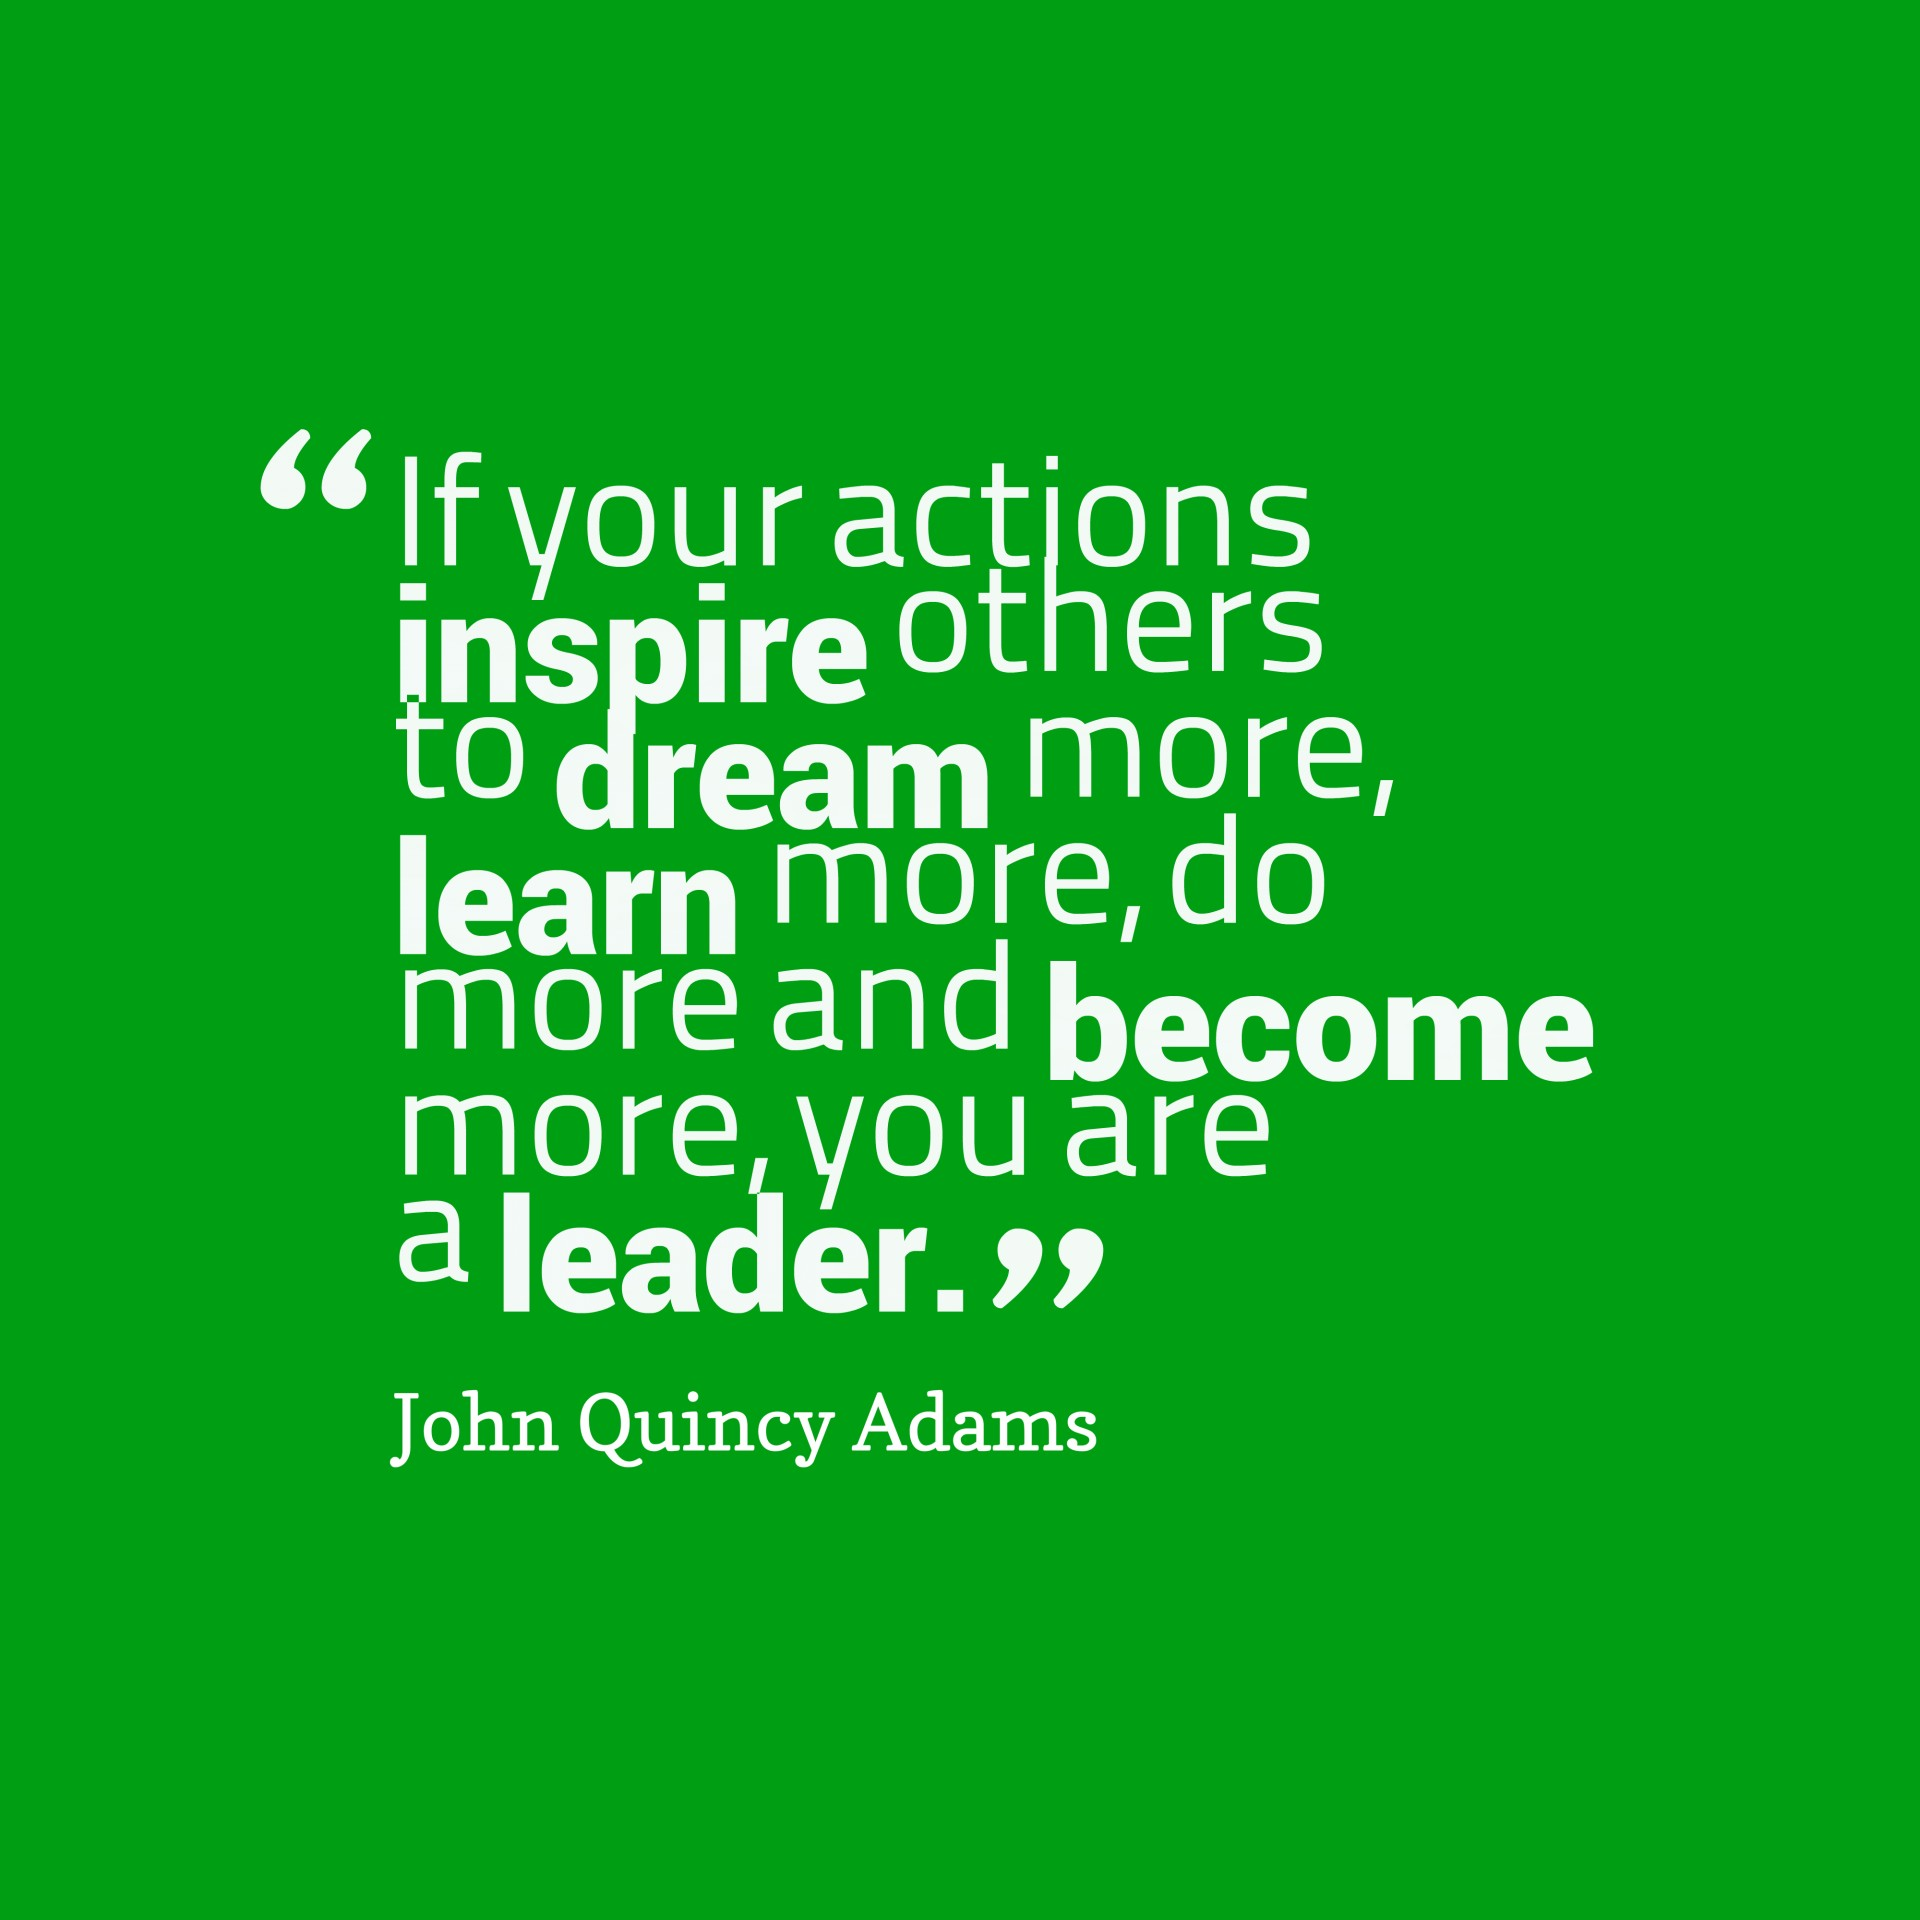 017 Ifr Actions Inspire Others Quotes By John Quincy Adams Essay Example What Inspires Phenomenal You Narrative About A Person Who Inspired College 1920